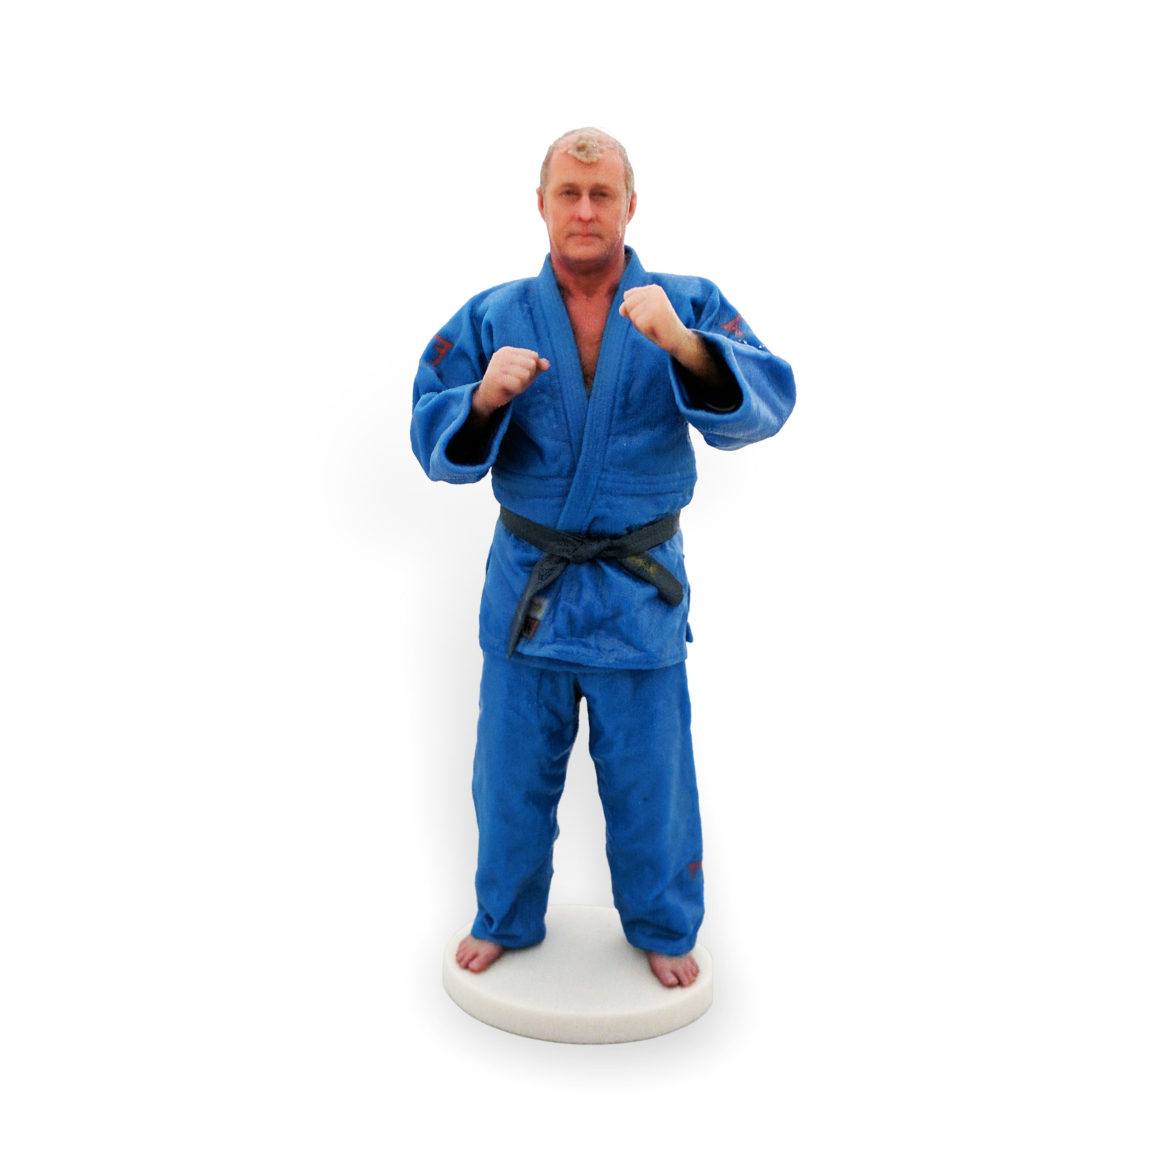 my3Dtwin, 3D Printed Custom Figurine of a man in blue karate kimono